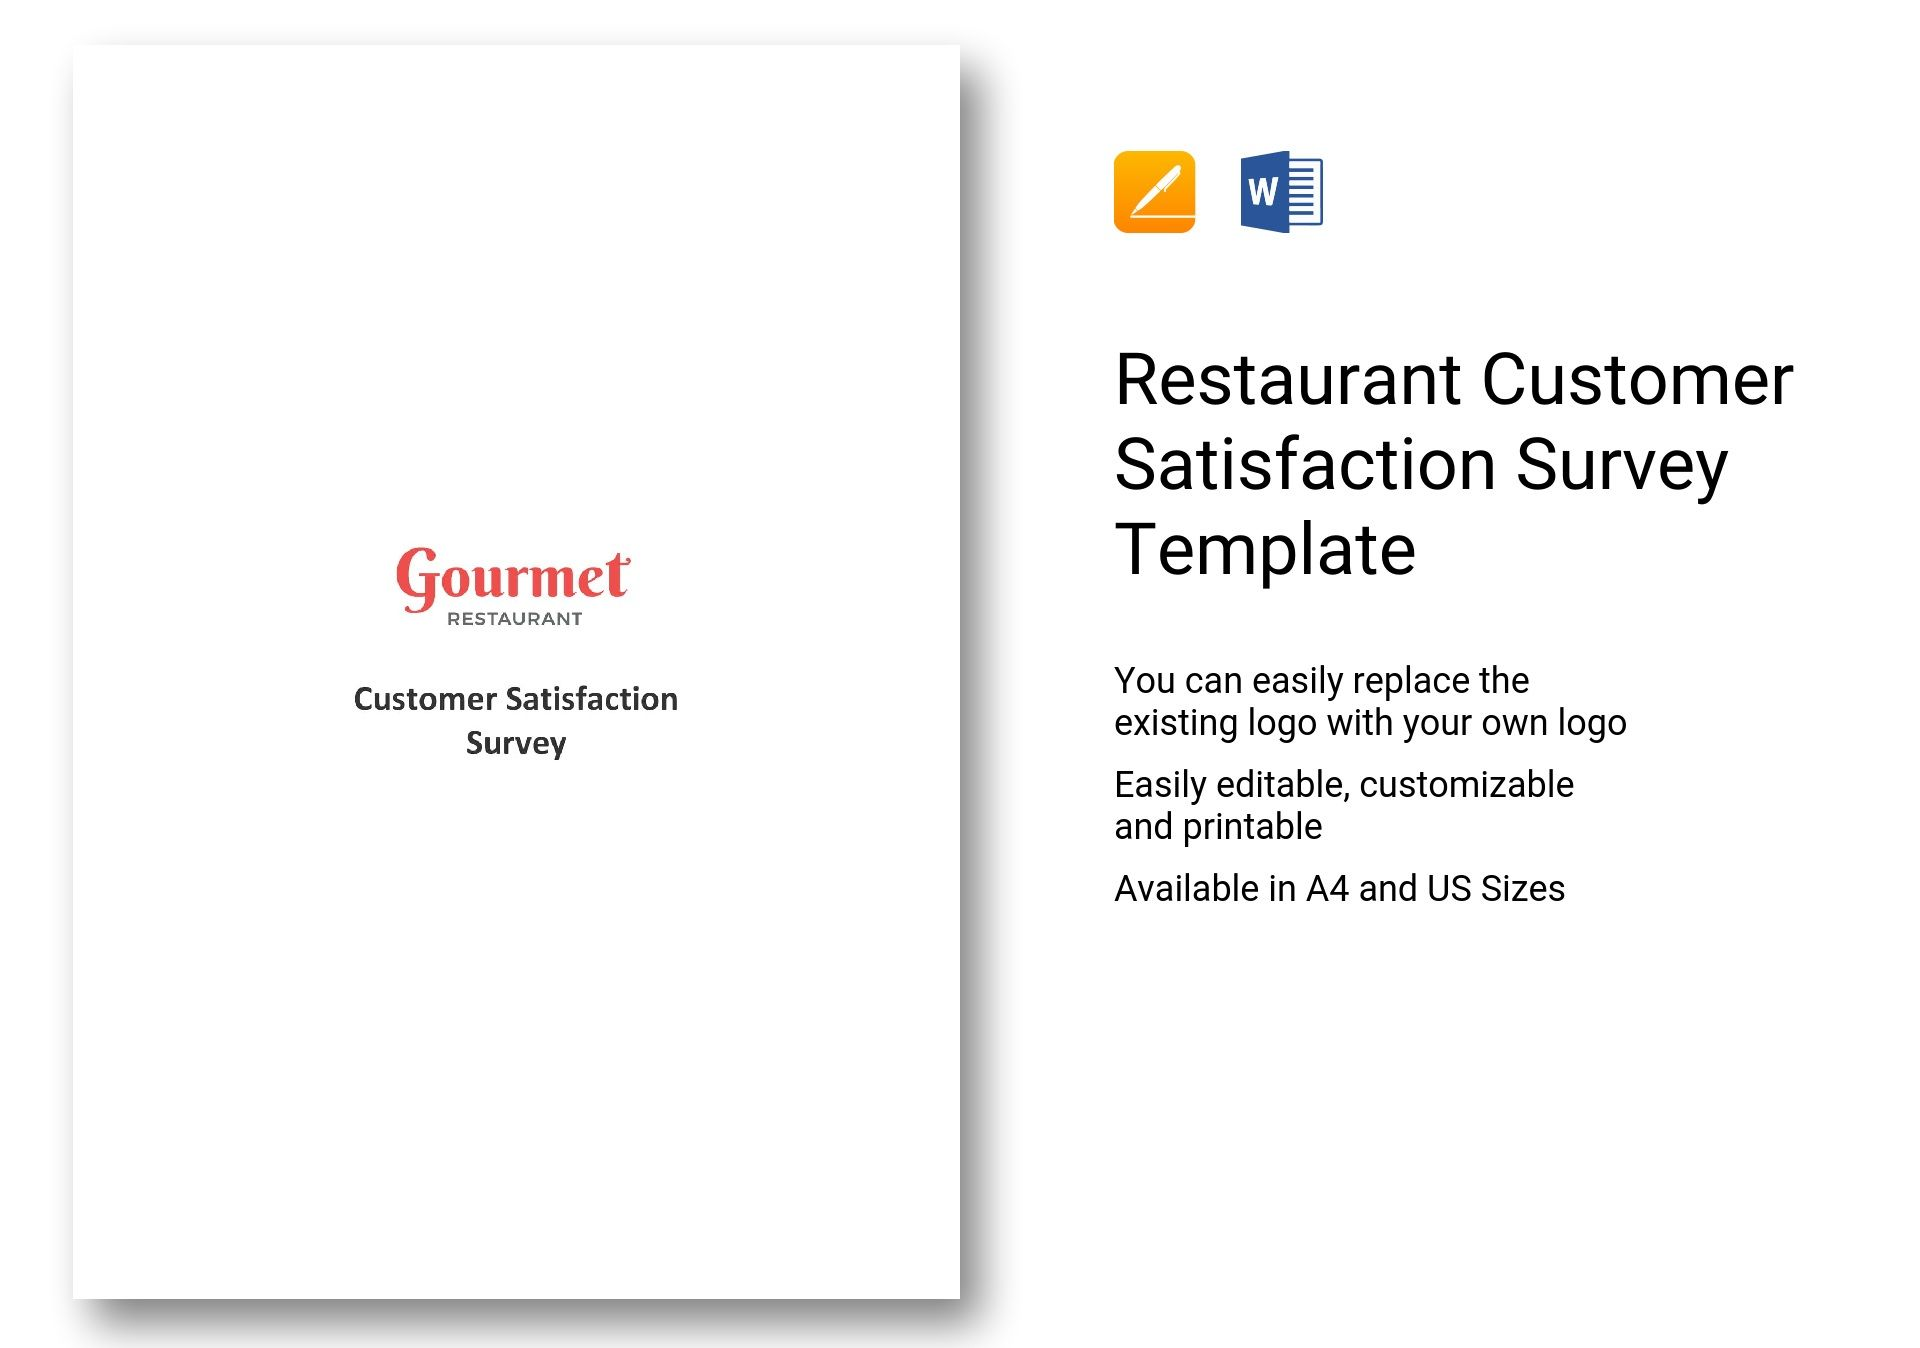 restaurant customer satisfaction survey template - questionnaire on restaurant customer satisfaction survey